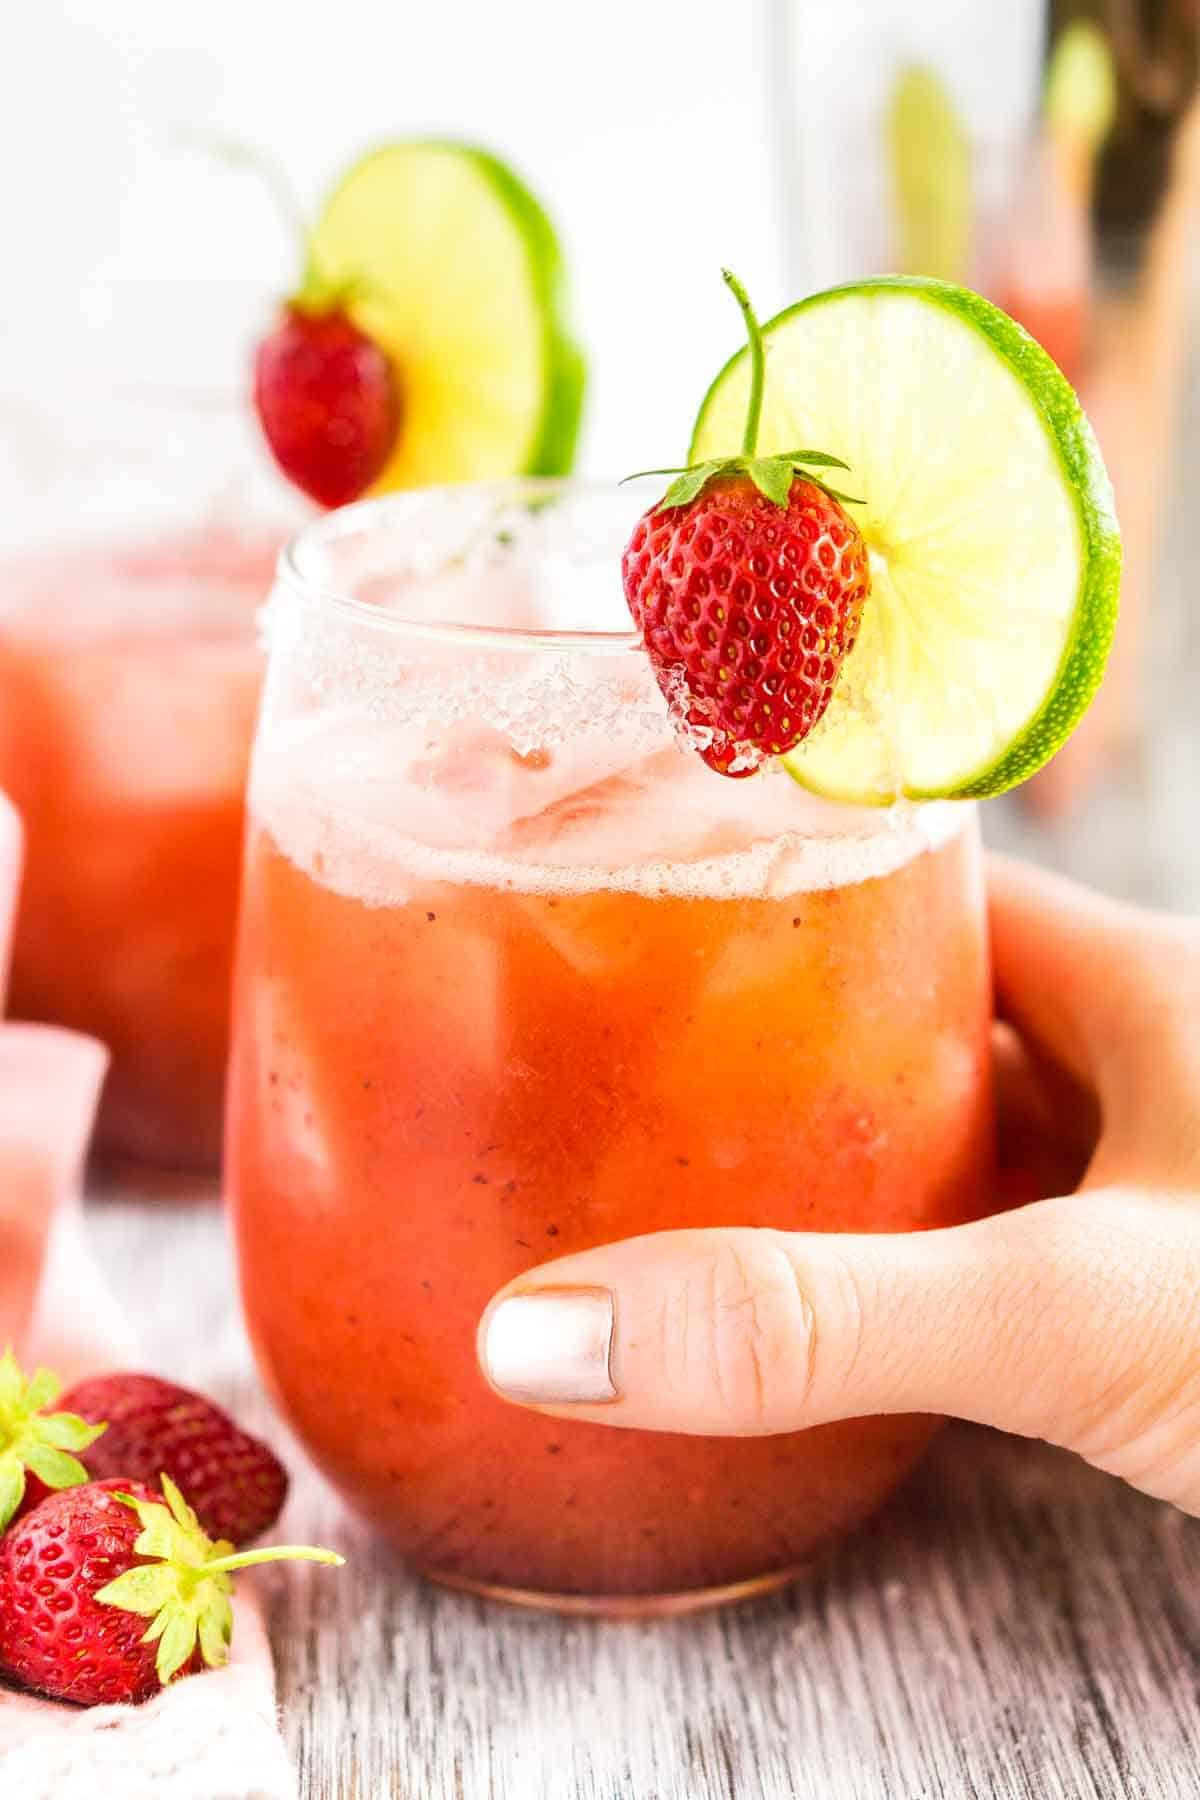 A hand holding the roasted strawberry margarita with fresh strawberries to the left.